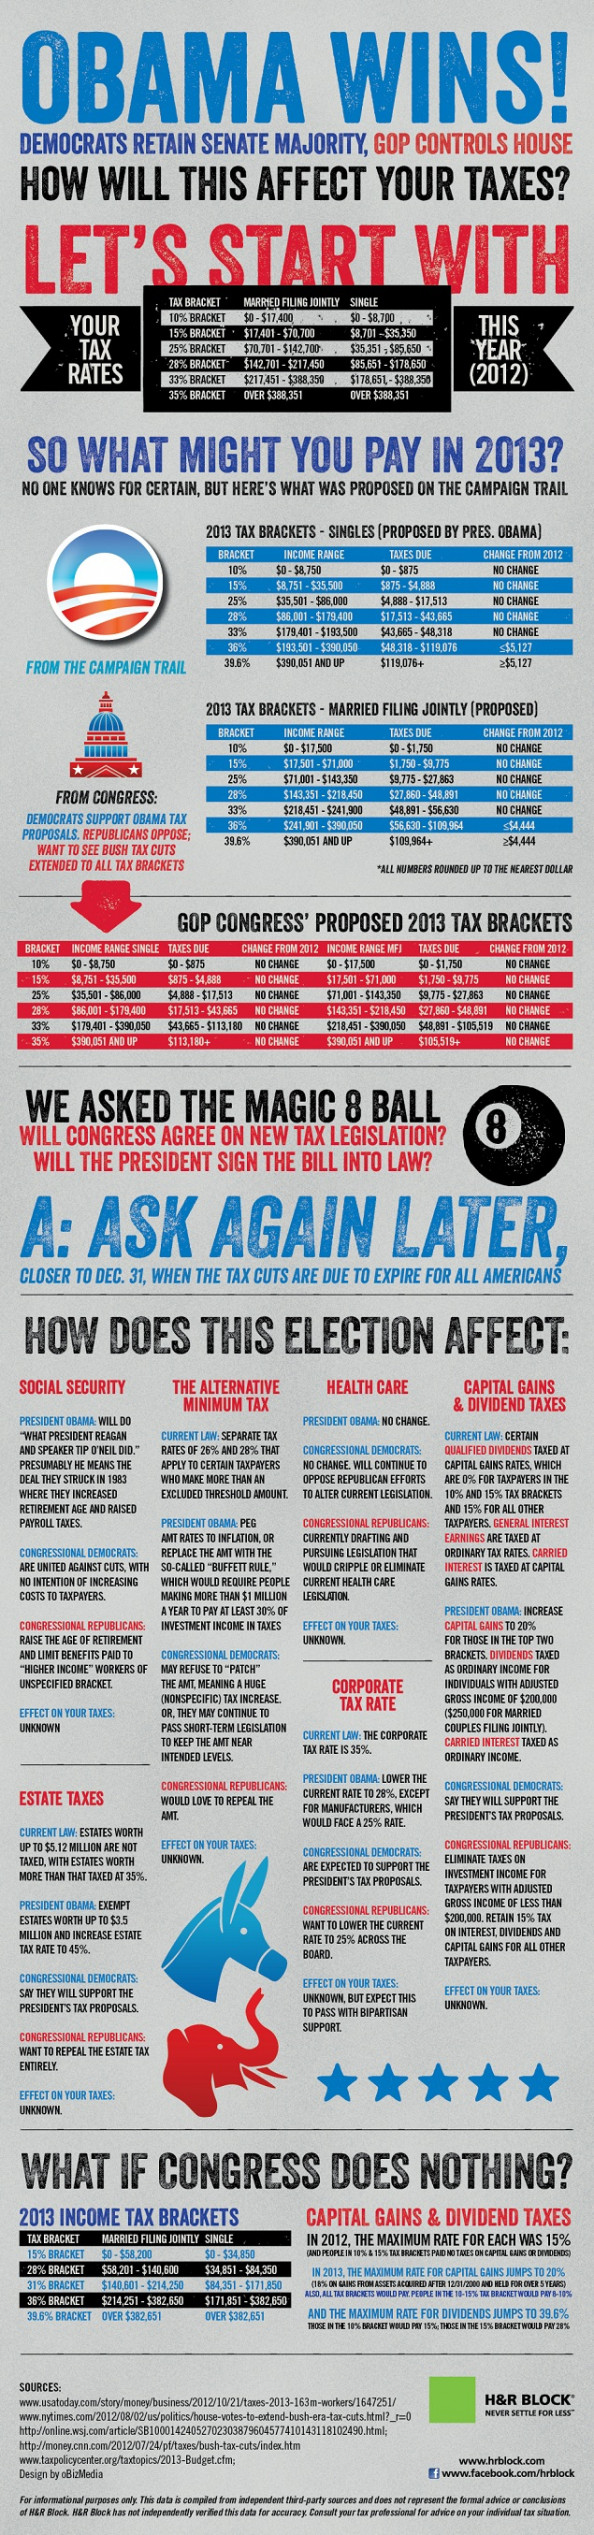 Obama Wins: Here&#039;s What That Could Mean For Your Taxes Infographic